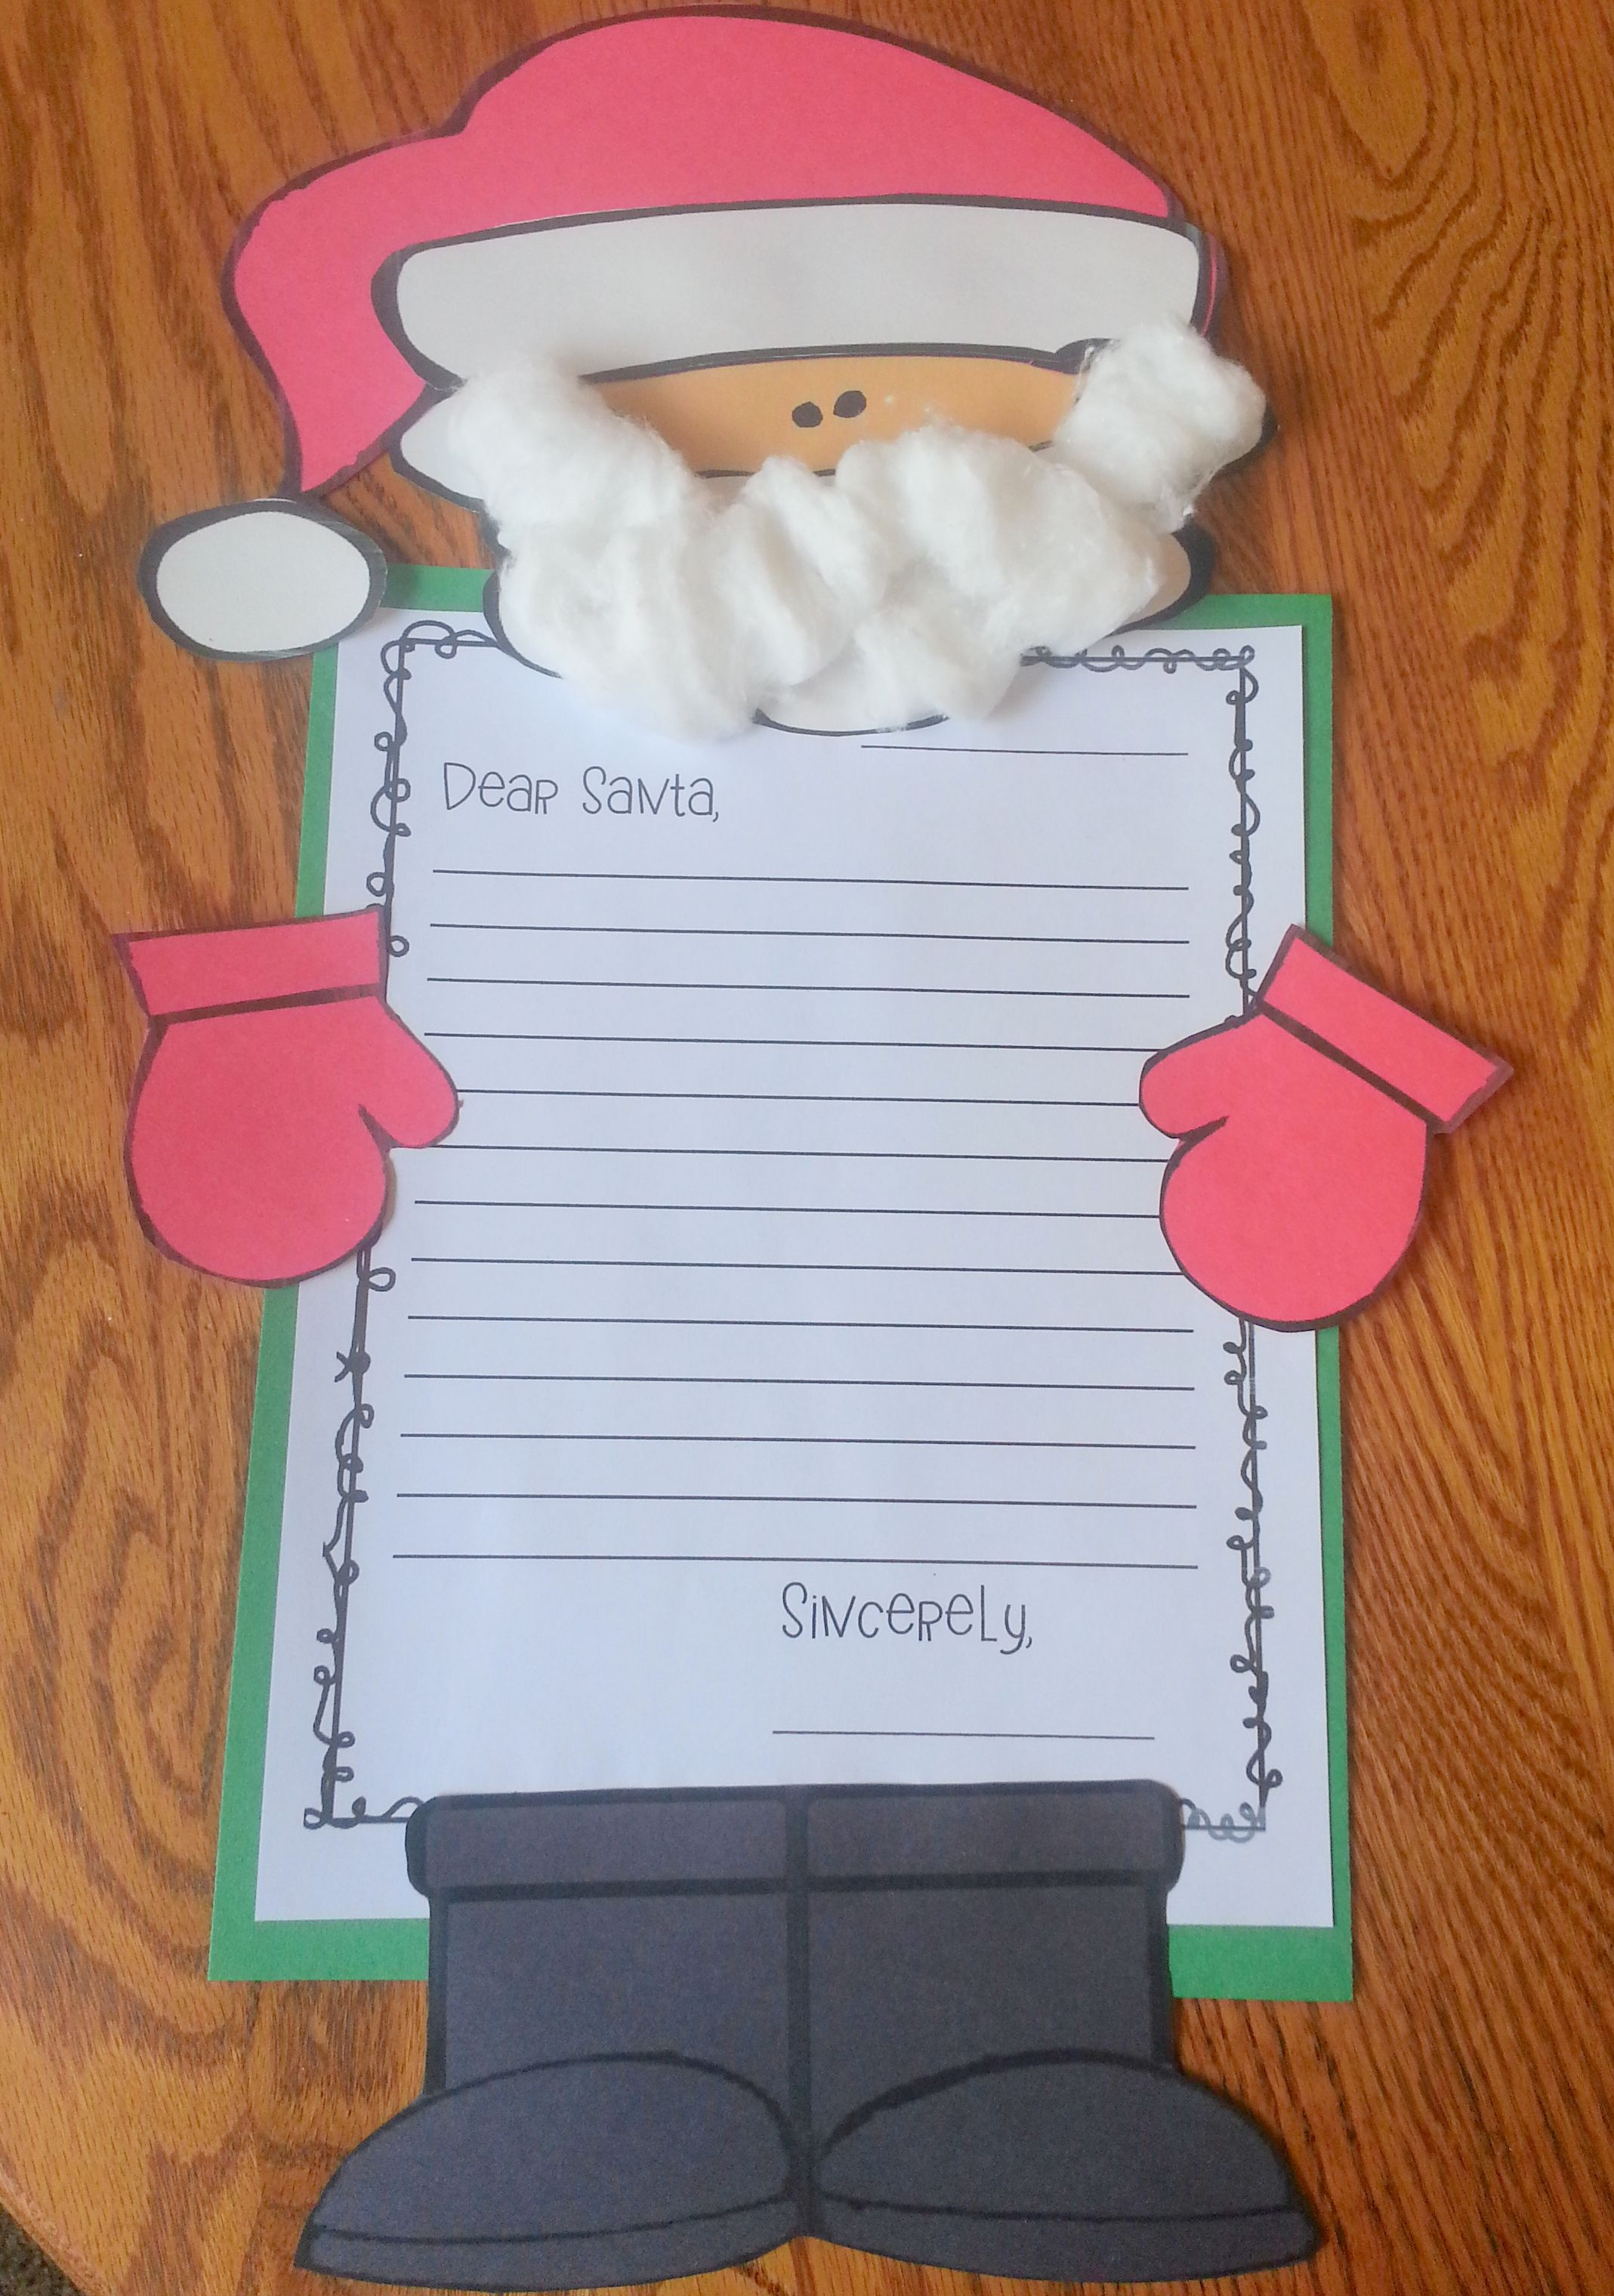 All I Want for Christmas- Persuasive Letter Writing Craftivity